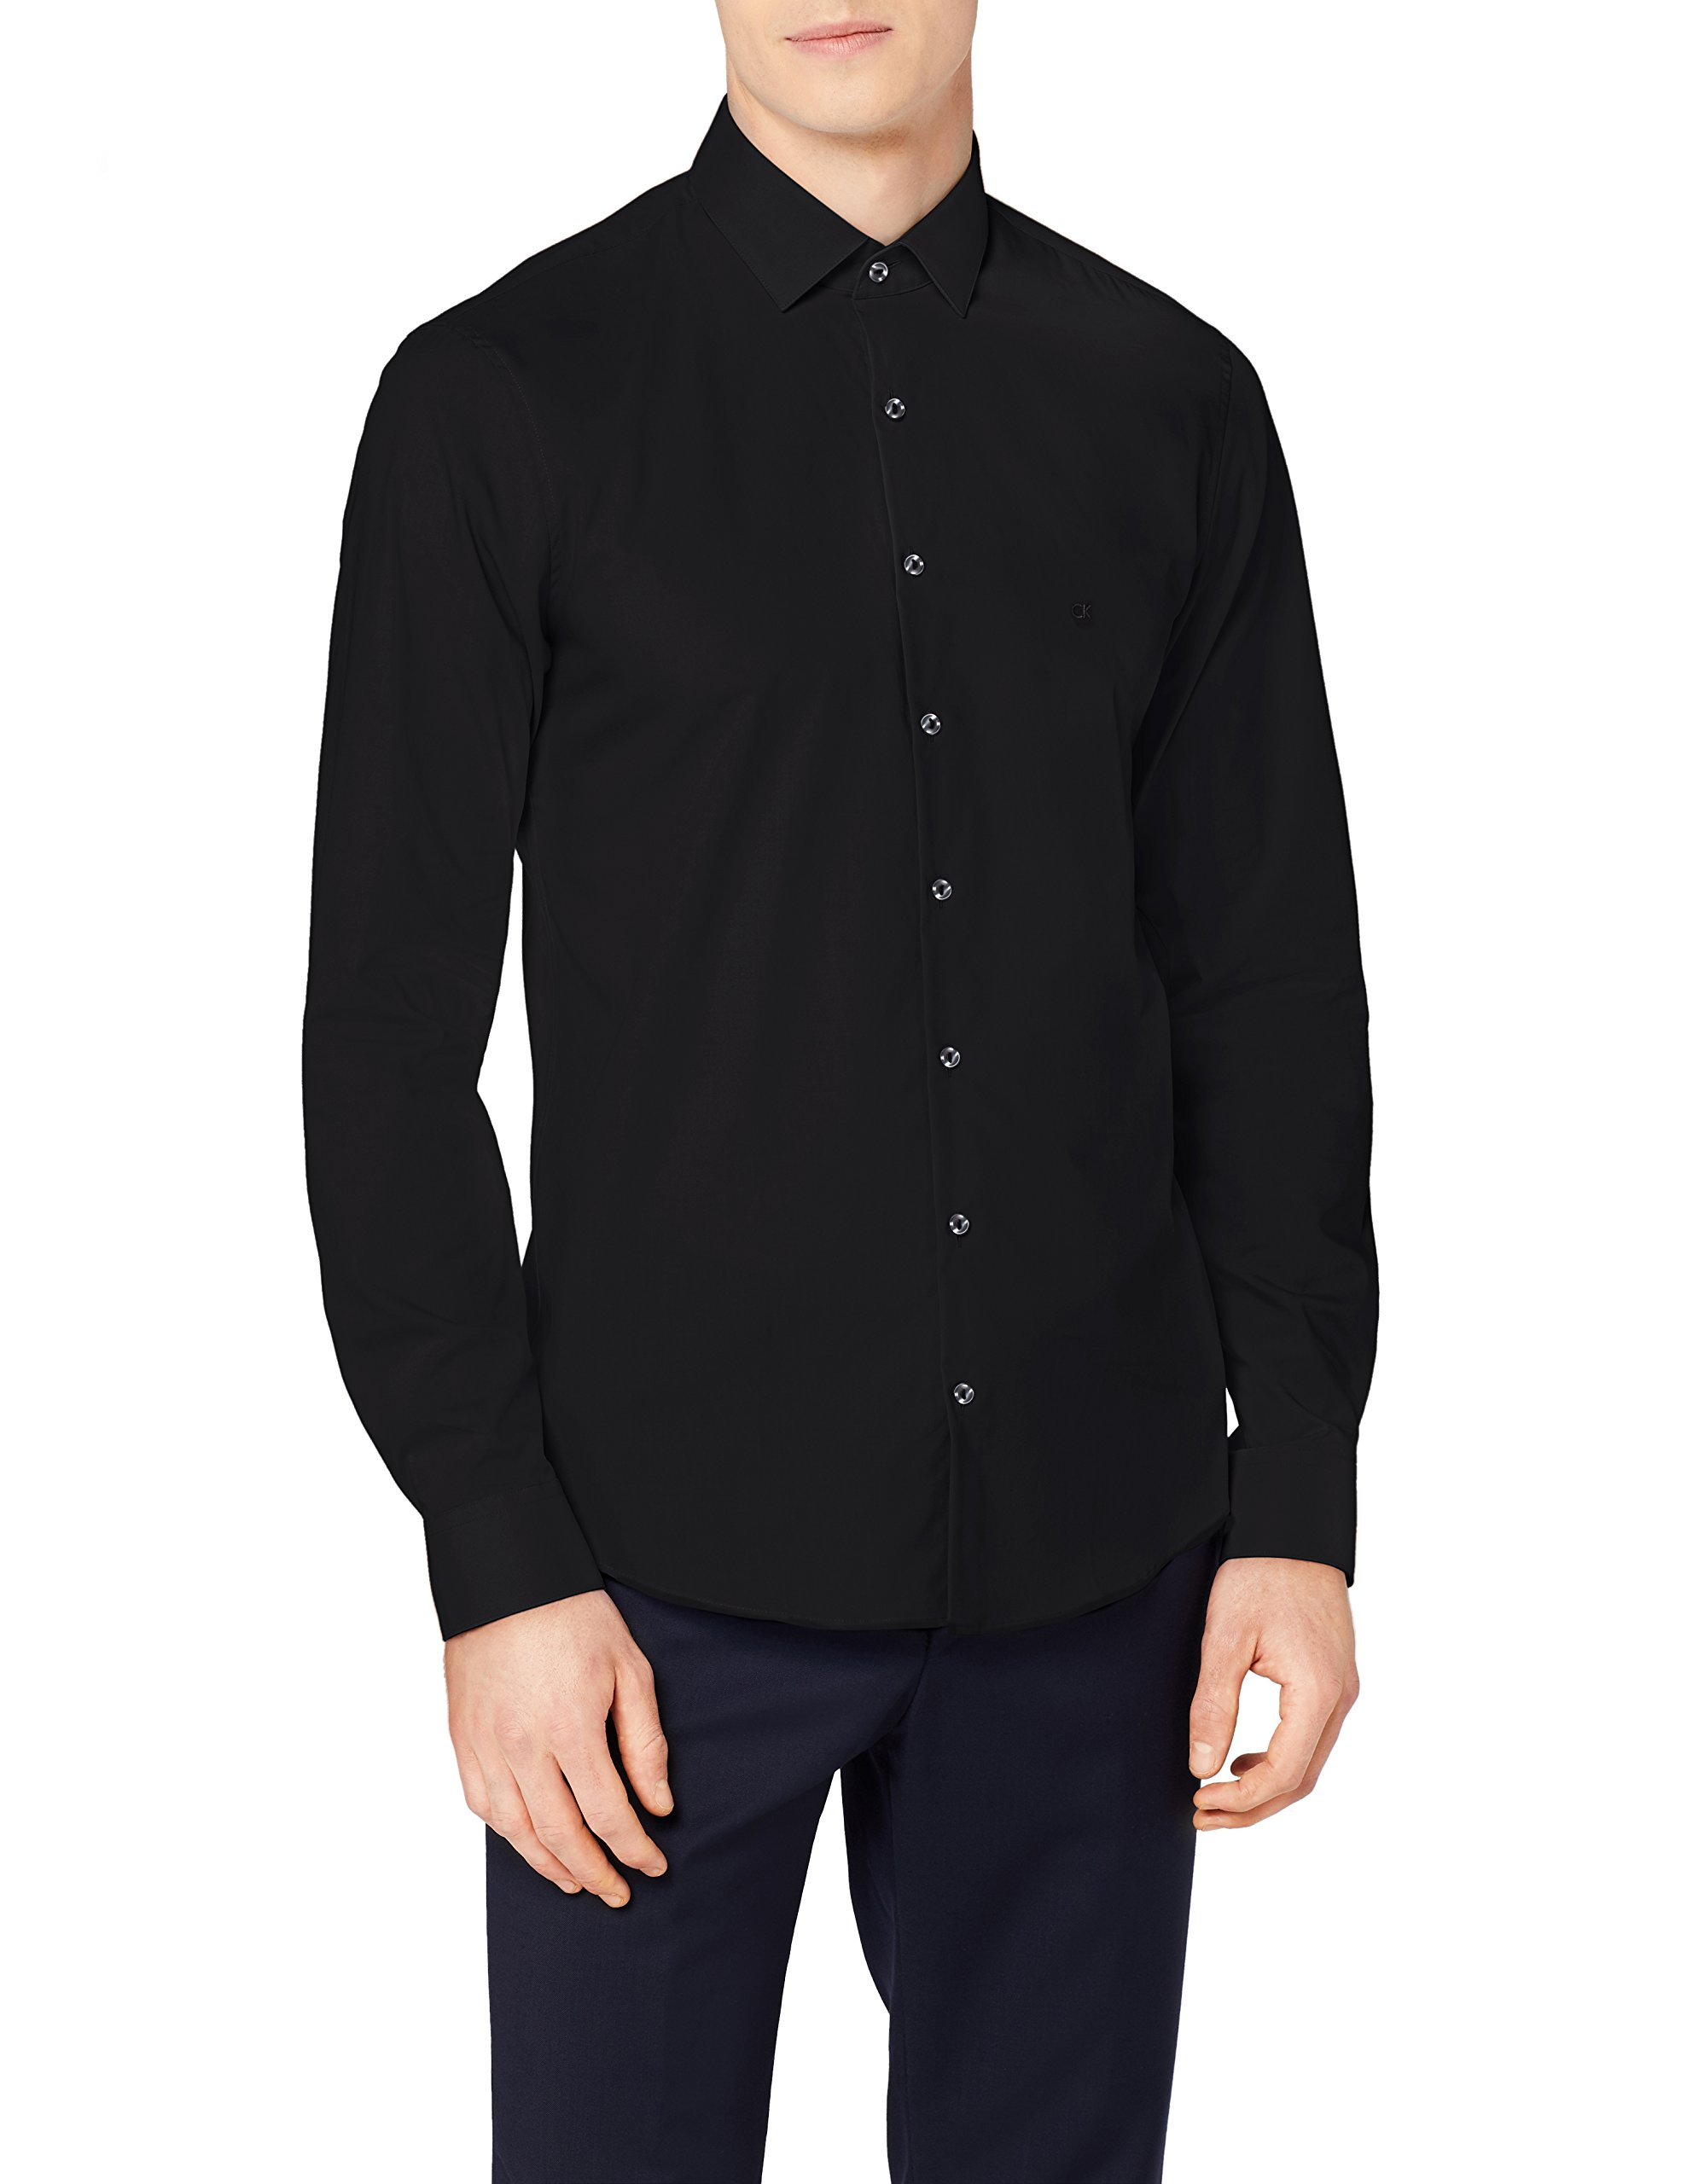 Klein Ftc Chemise Fabricant42Homme Fit BusinessNoirblacktaille Calvin Bari Slim thQrds